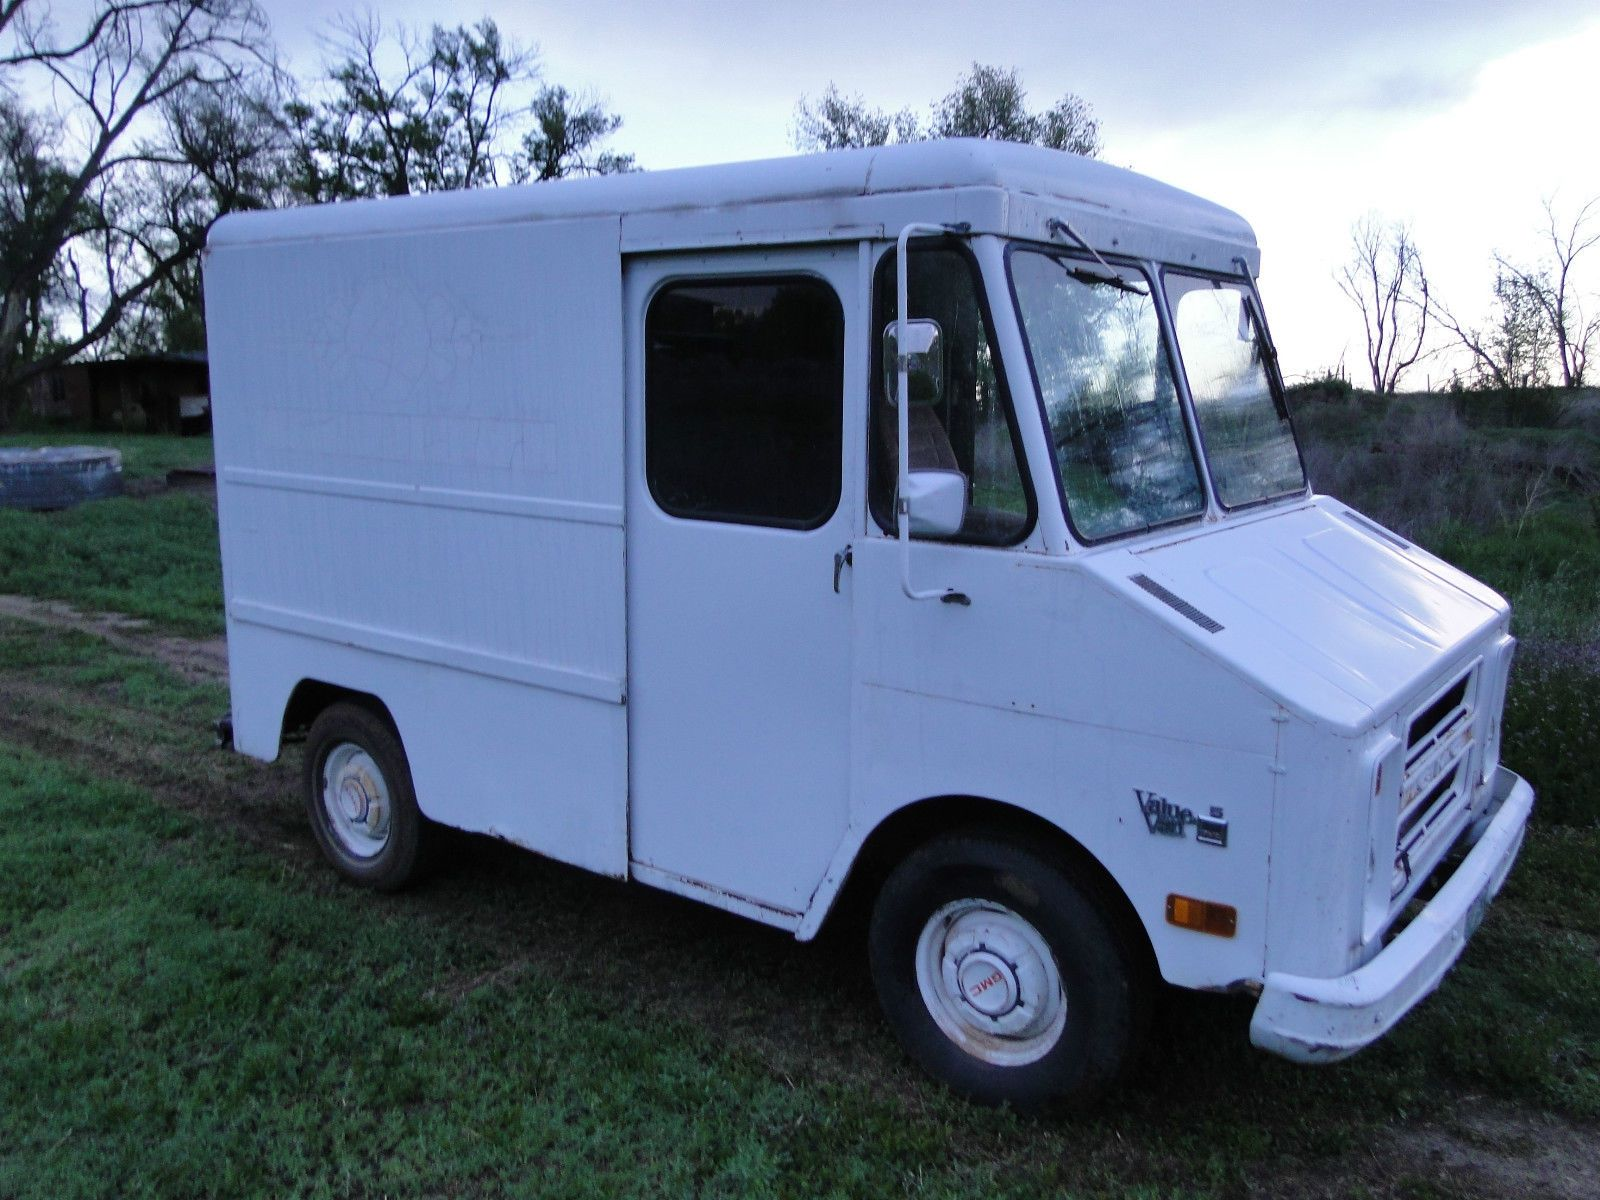 hight resolution of 1972 chevrolet p30 short step van this was the type of step van that was used in the 1970 s 80 s for home newspaper delivery a al hudak special